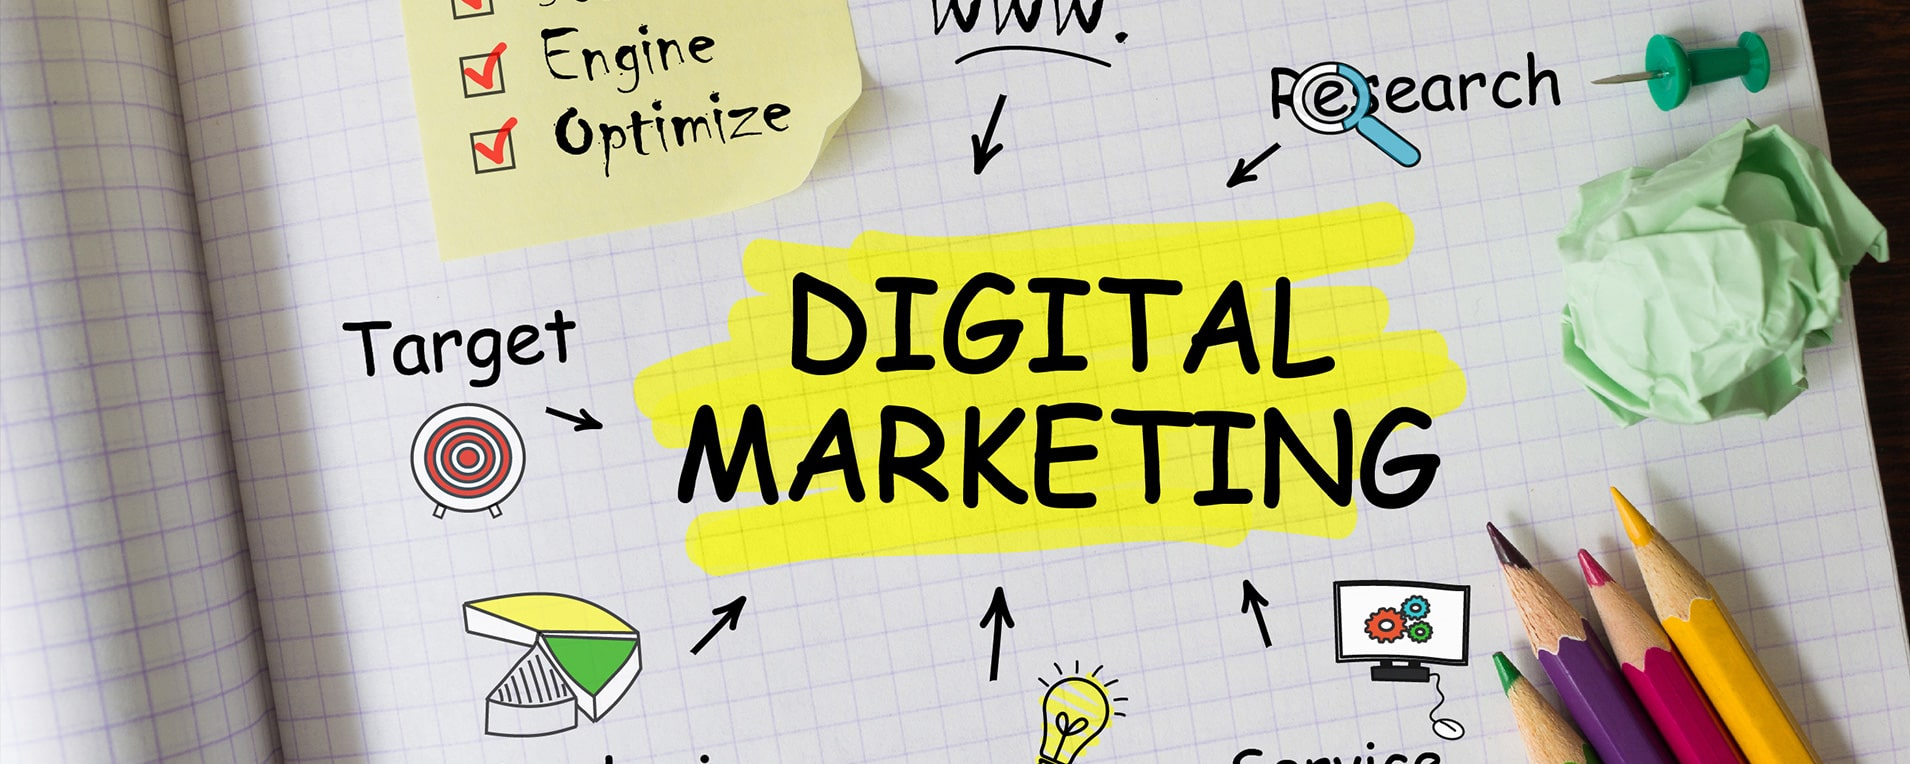 TA Digital Joins the W3C to Advance Standardization of Digital Marketing